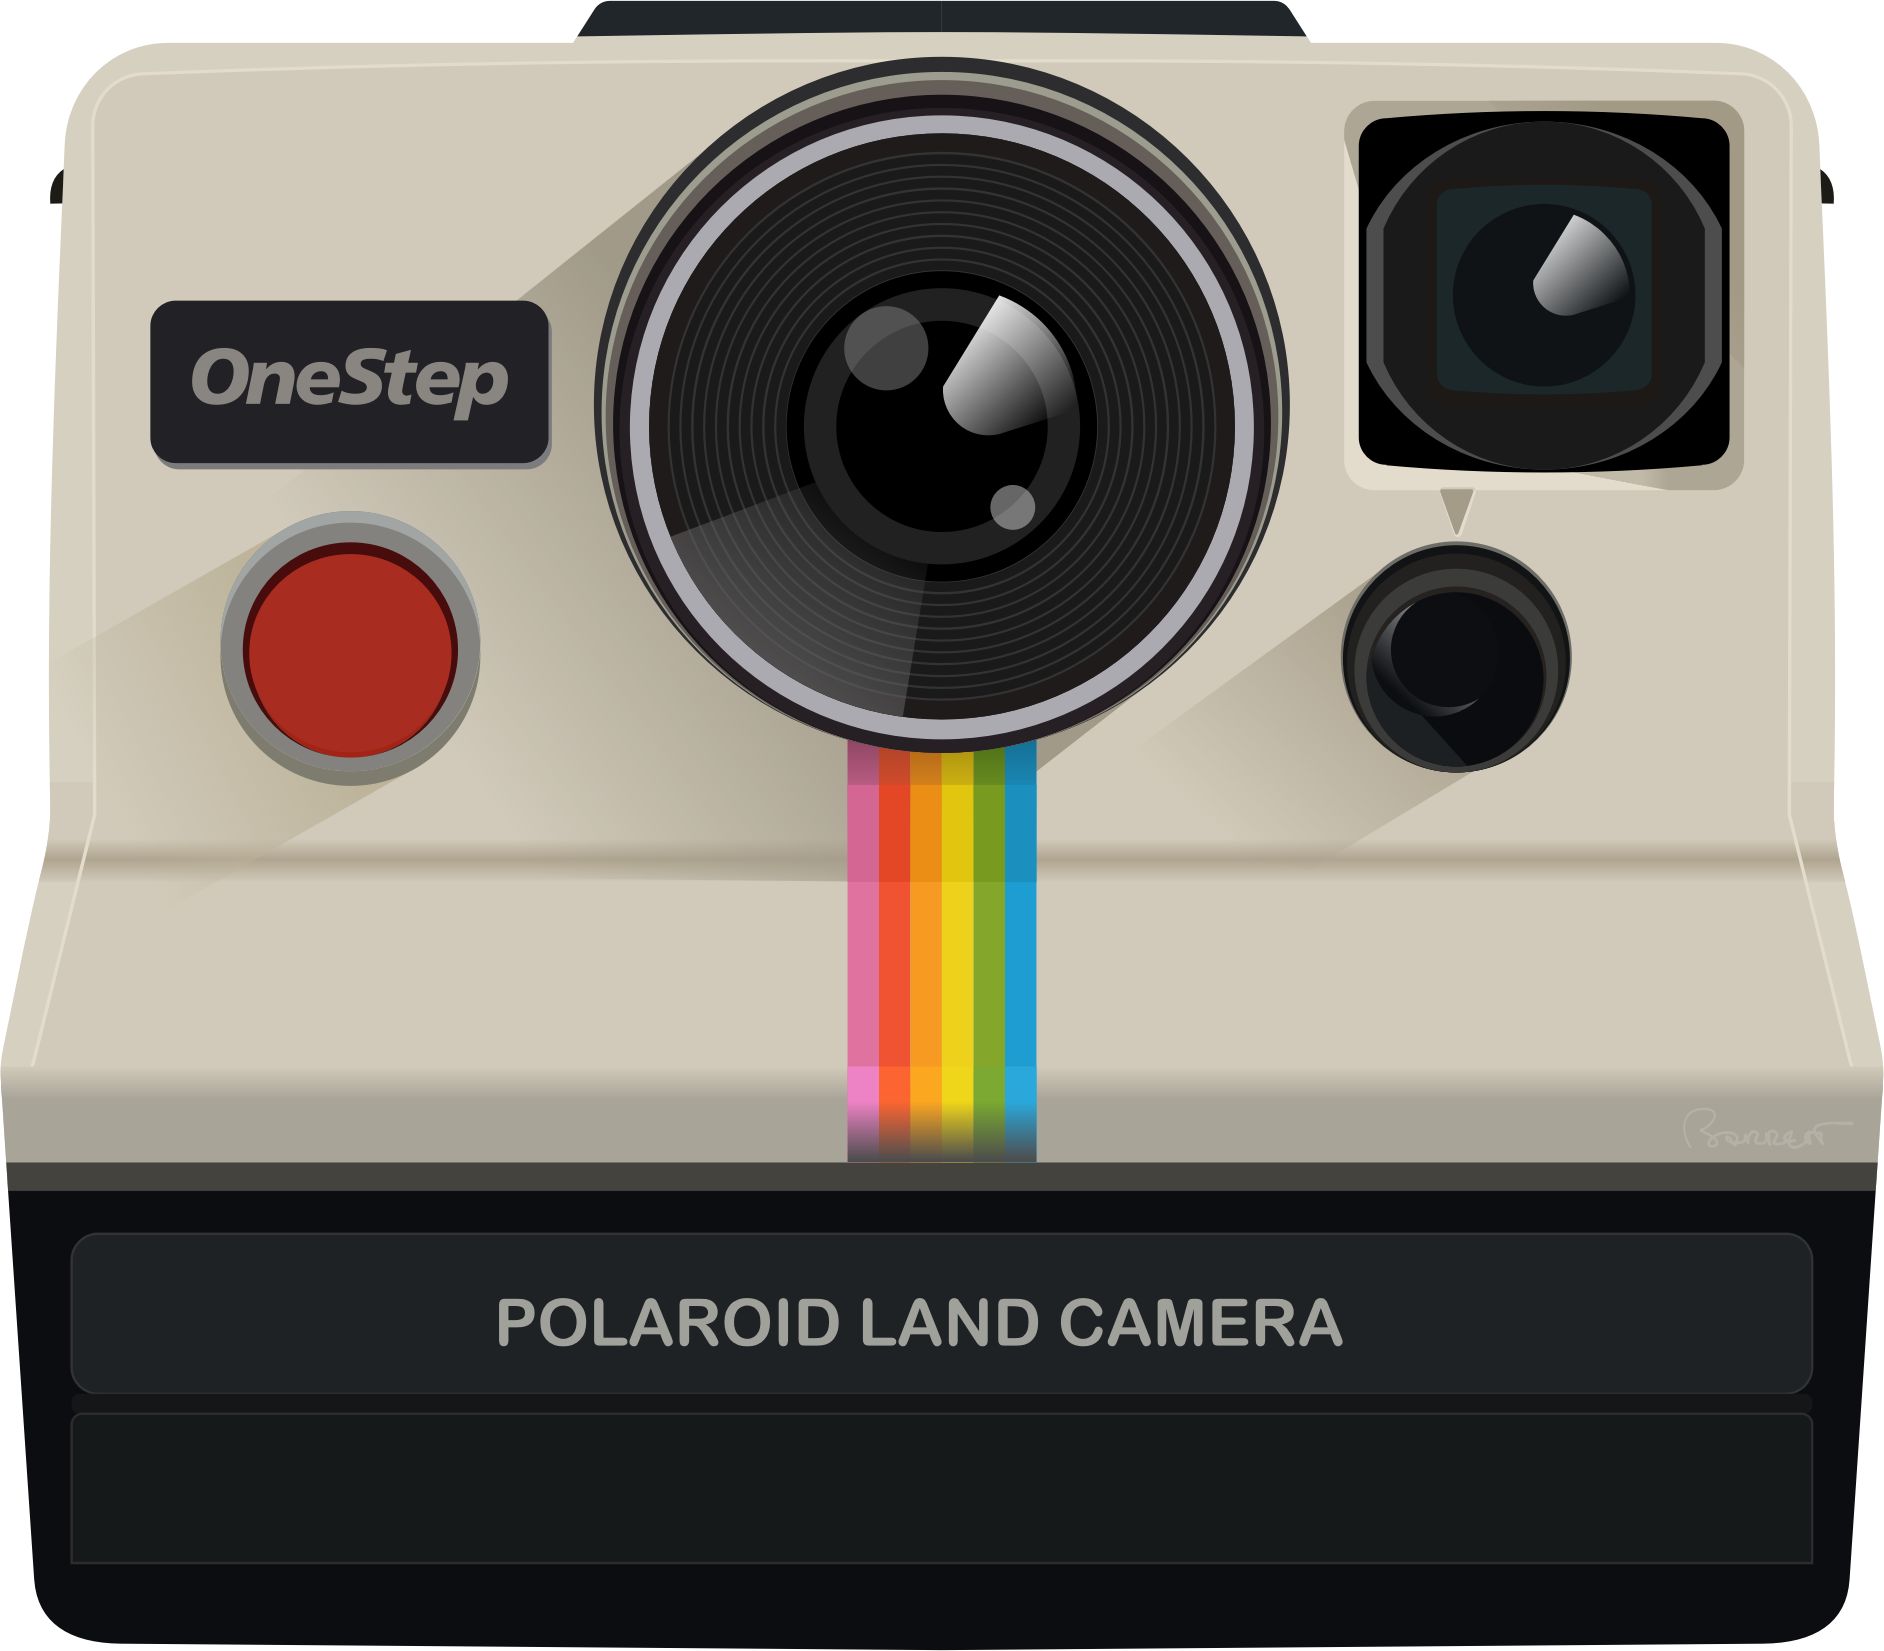 Clipart - Polaroid 1000 Land Camera OneStep